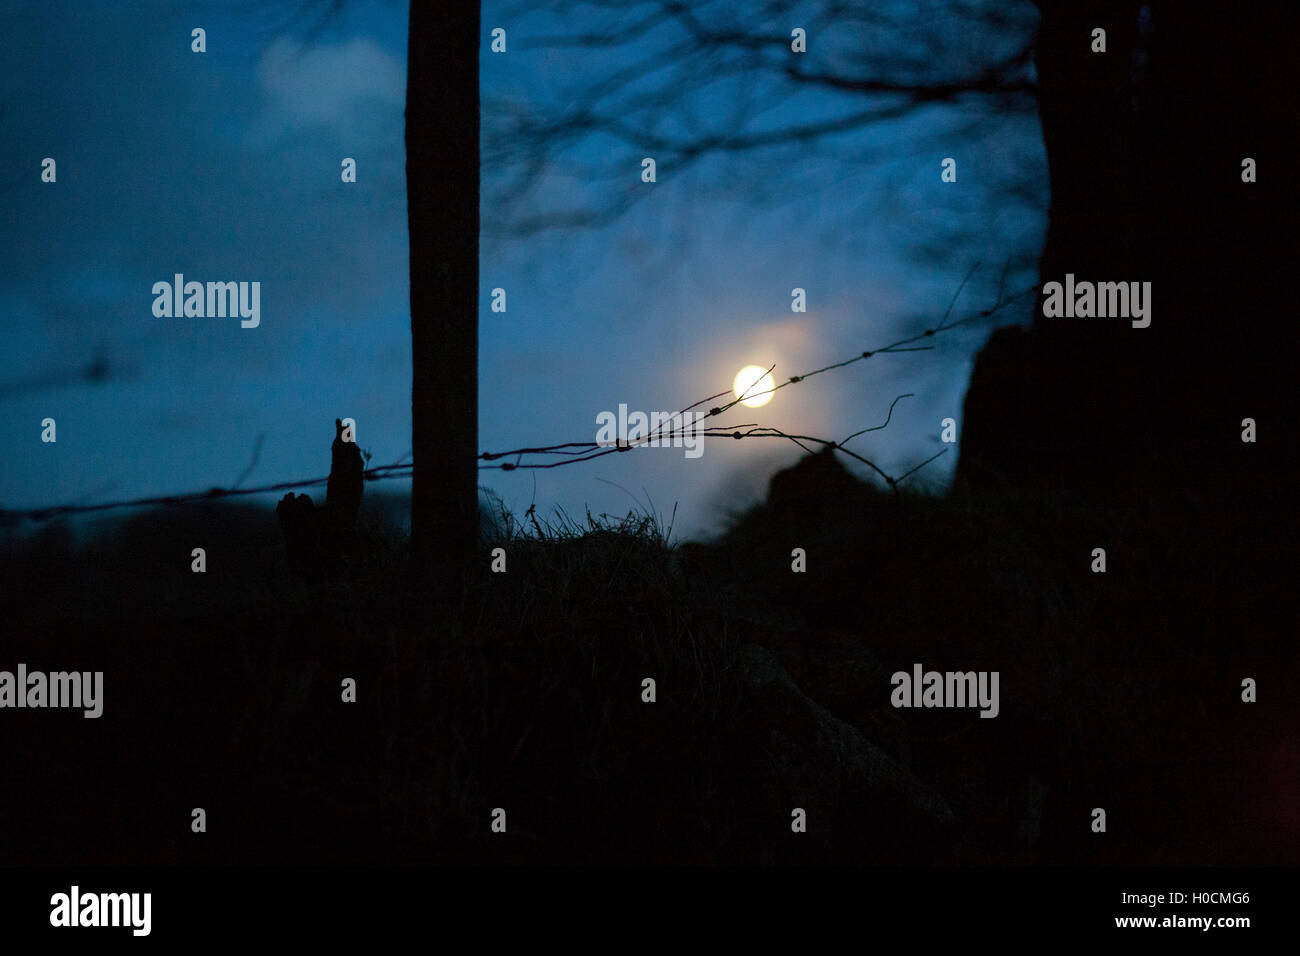 Night shot full moon barbed wire fence  clouds tree branches dusk sun down blue sky dark blue,country countryside, - Stock Image